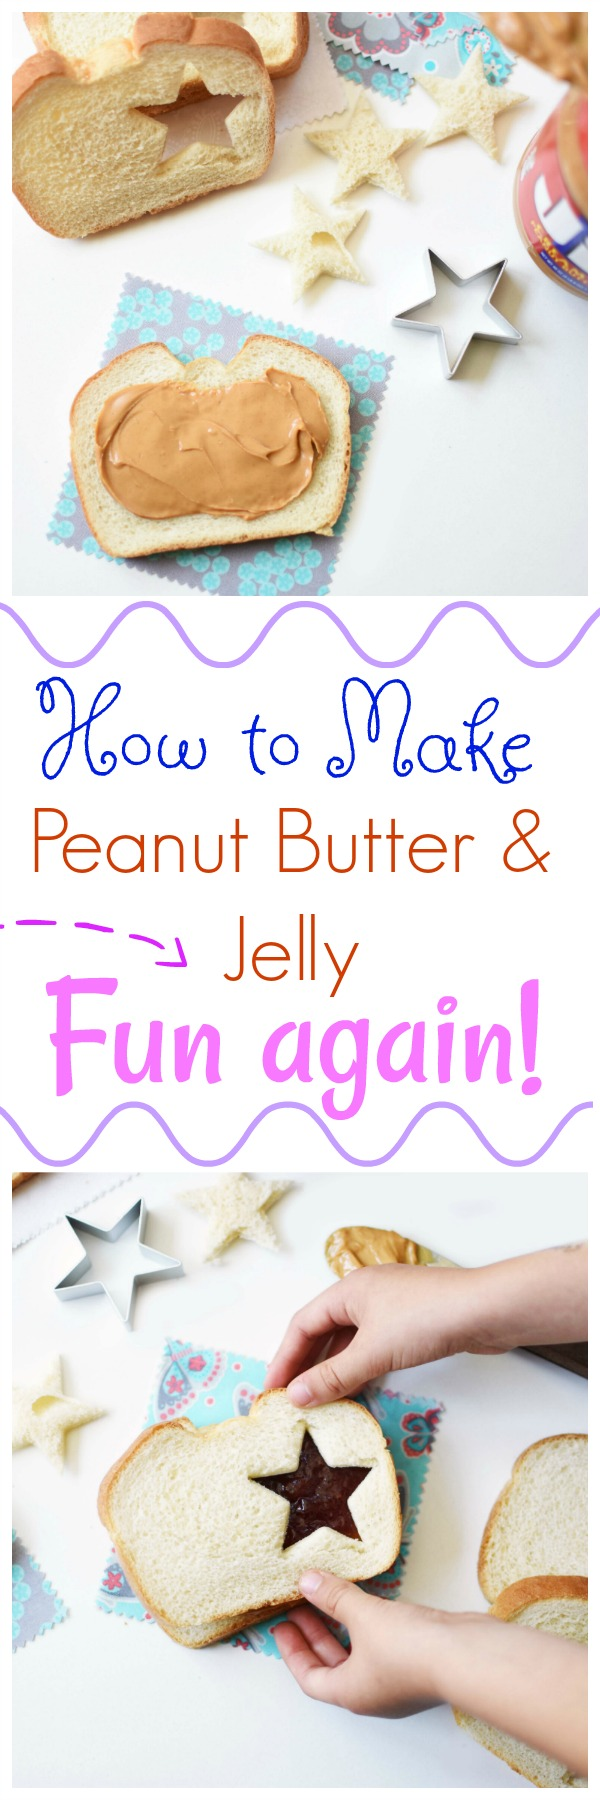 How to Make Peanut Butter and Jelly Fun Again